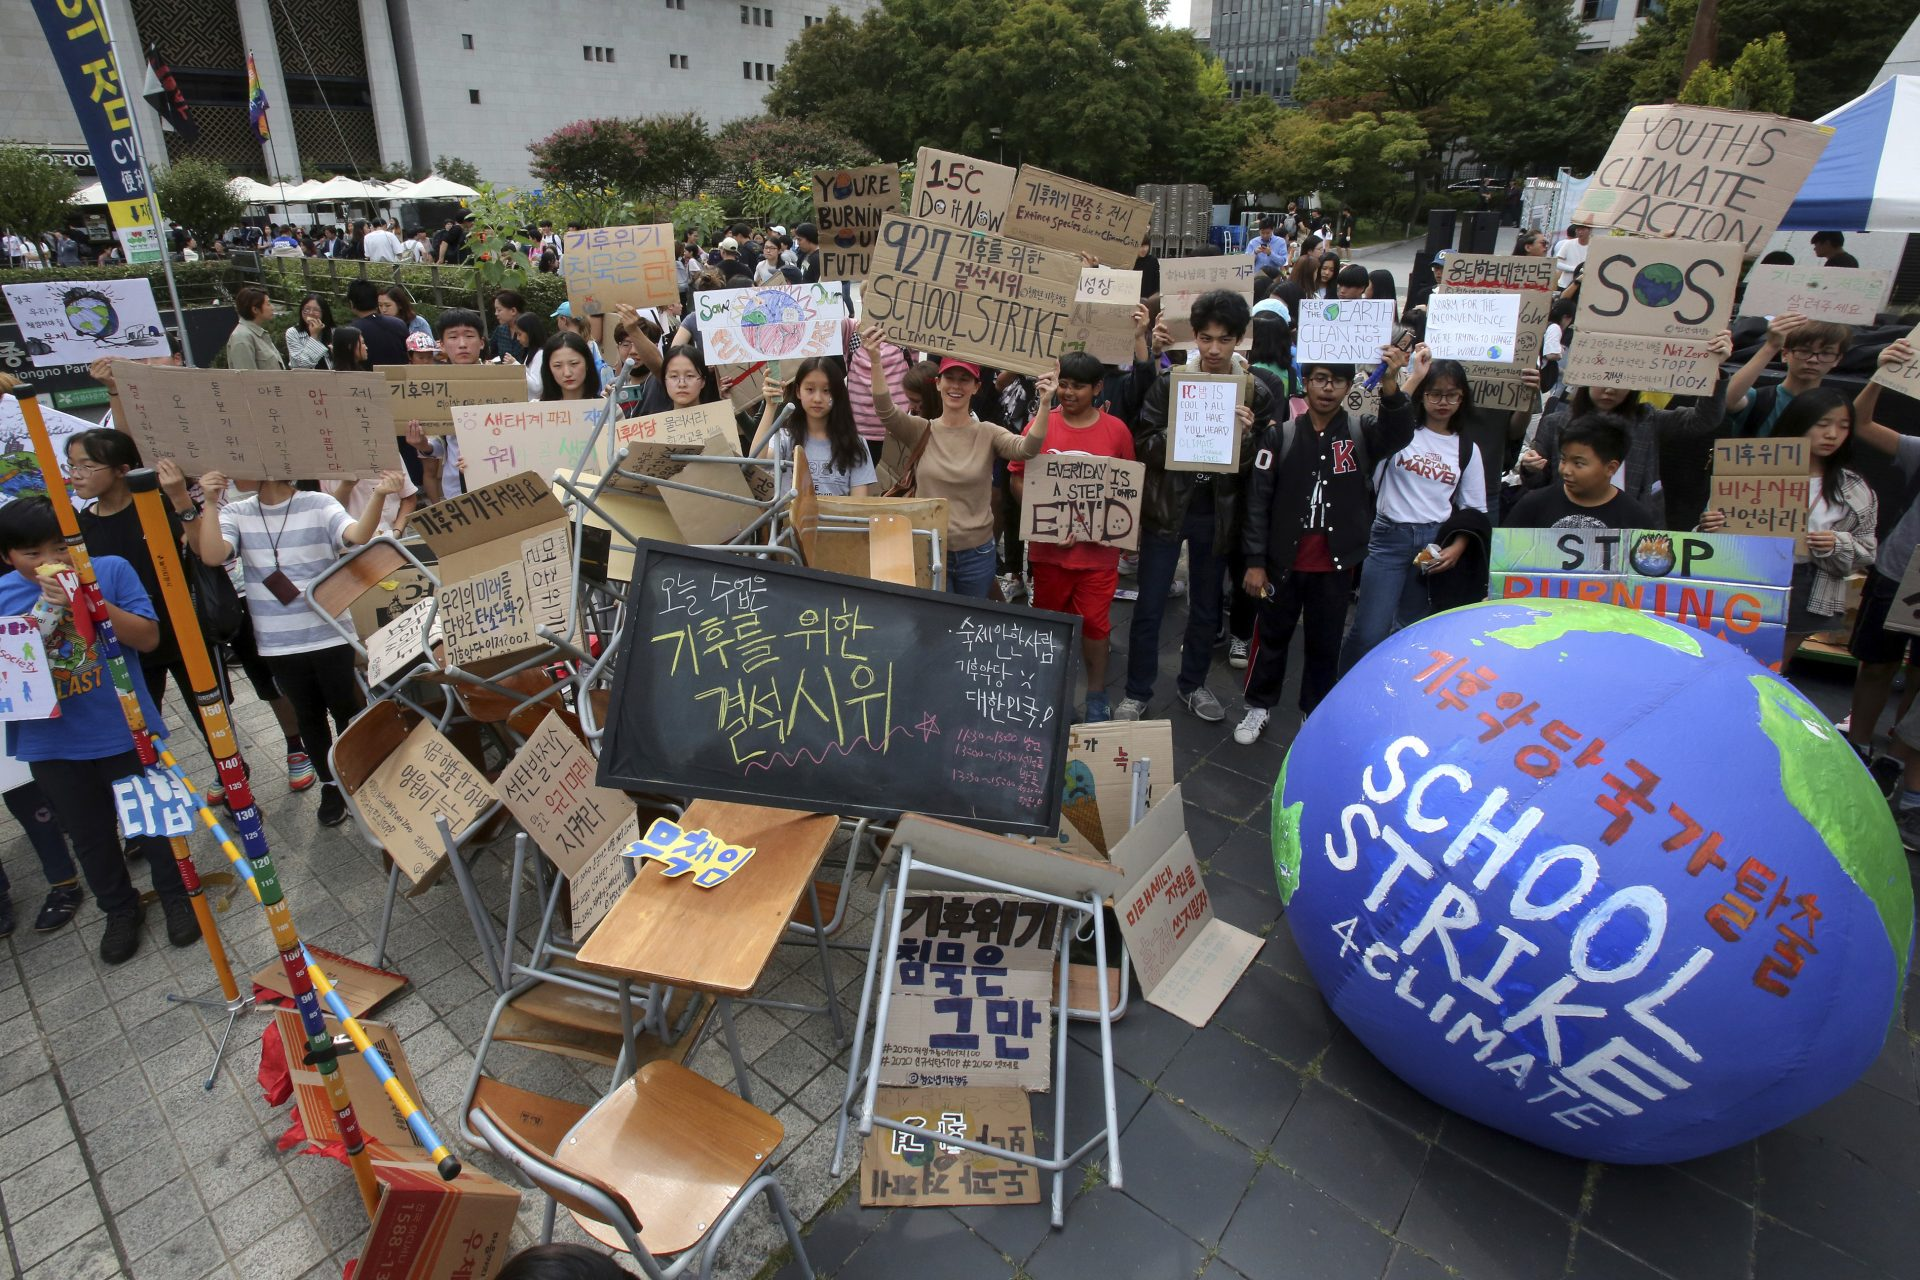 Students stage a rally demanding the escape from the climate crisis in Seoul, South Korea, Friday, Sept. 27, 2019. Hundreds of students boycotted classes and gathered to demand world leaders' action to stop climate change.